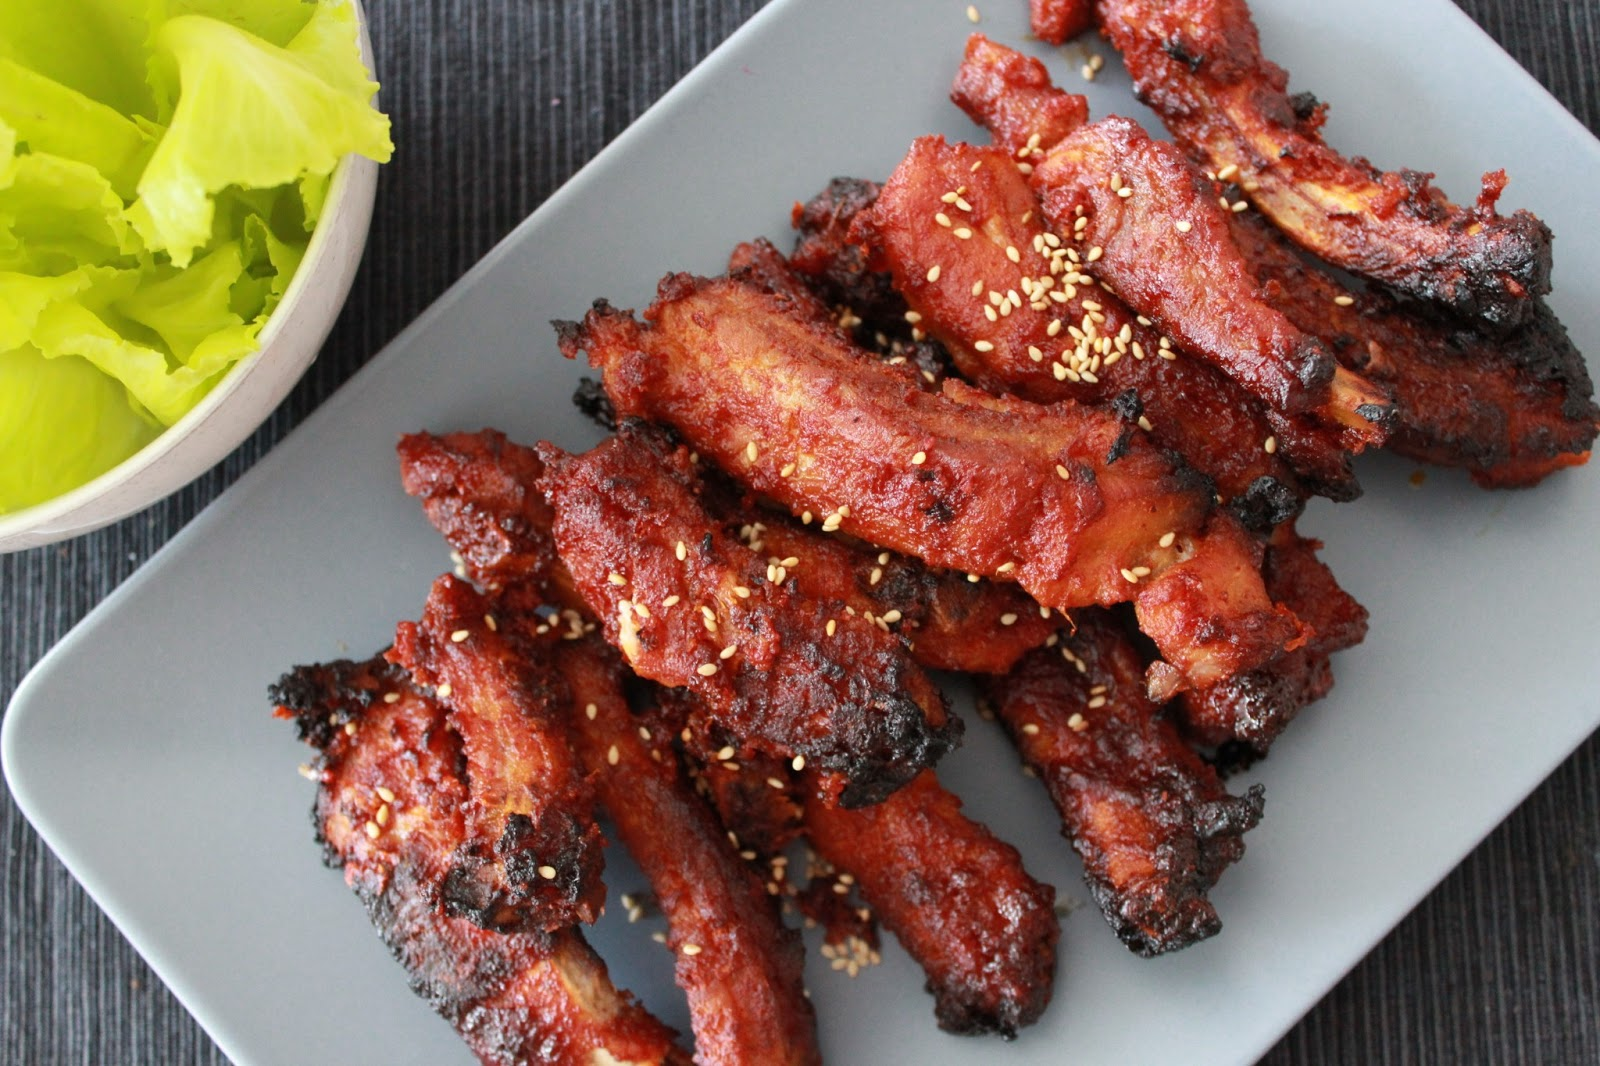 How to cook marinade for pork ribs